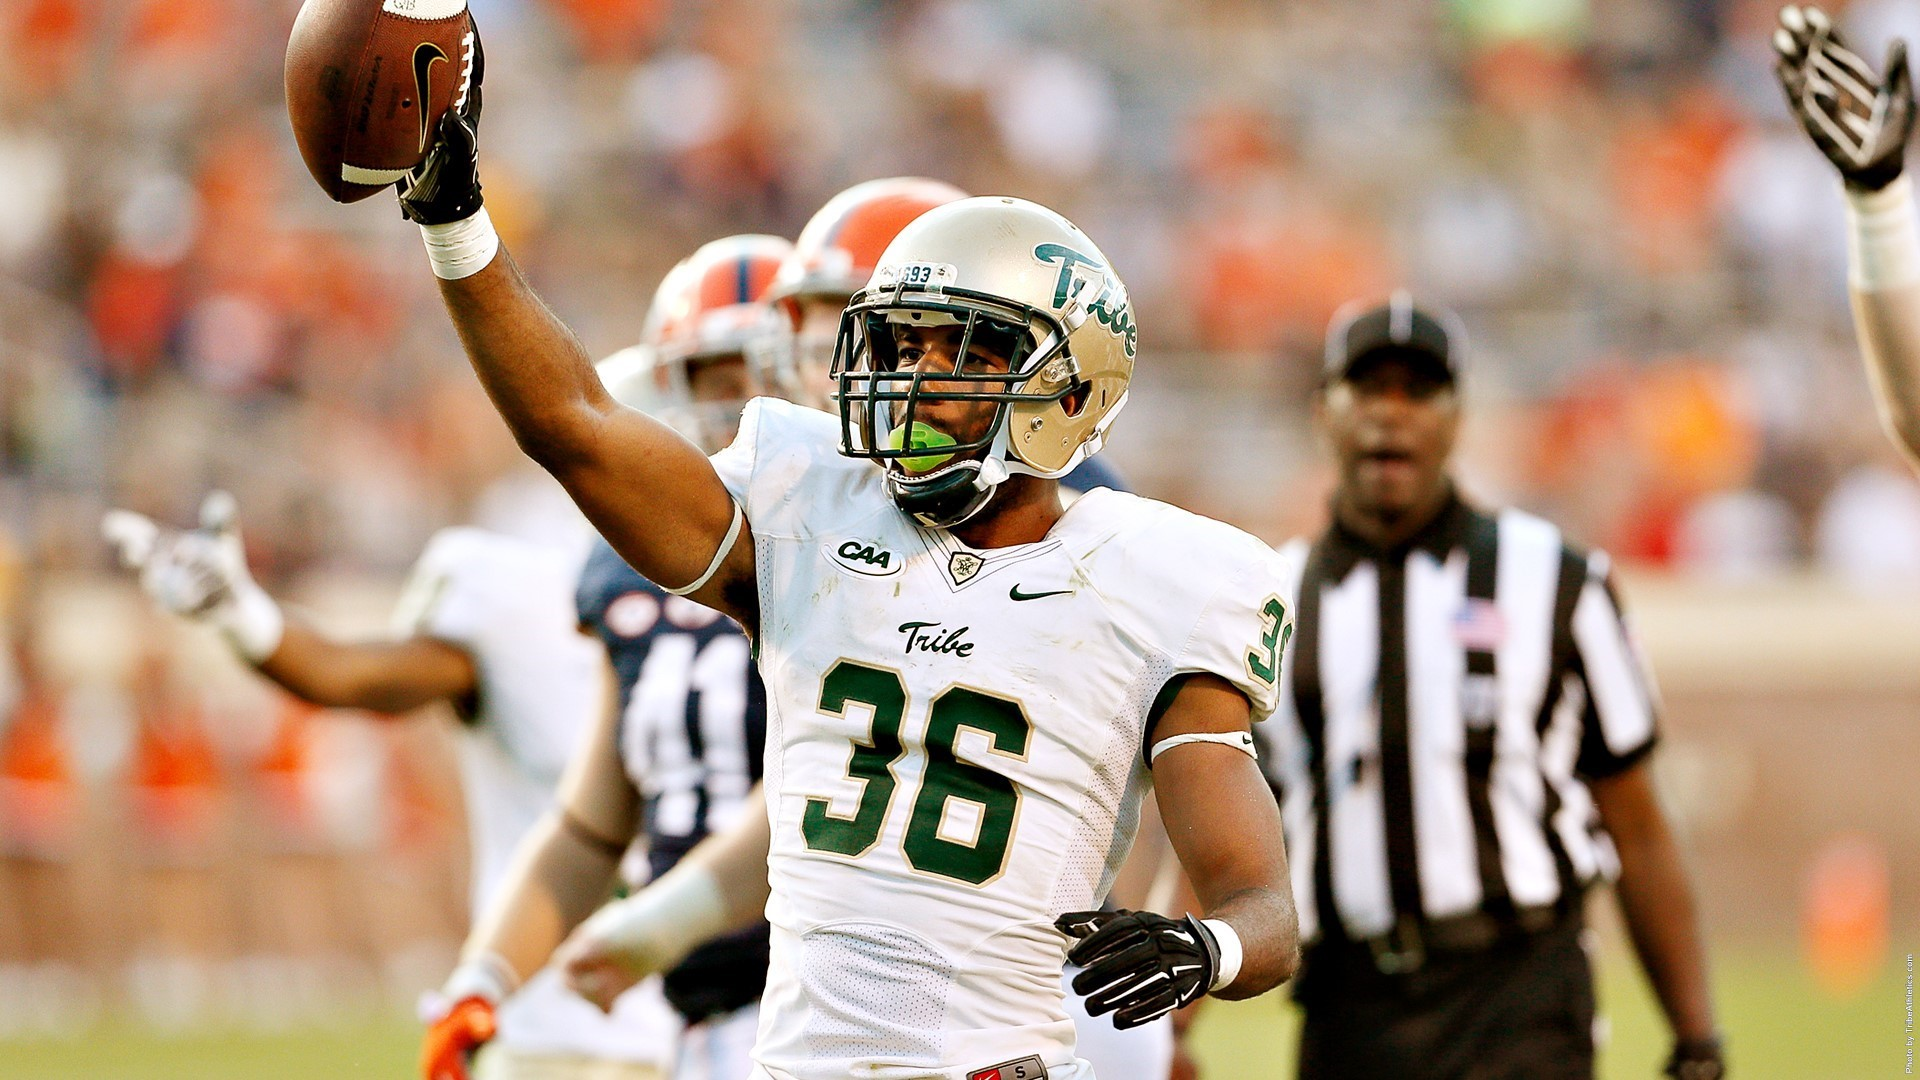 Tribe Football's DeAndre Houston-Carson Drafted by Chicago Bears ...